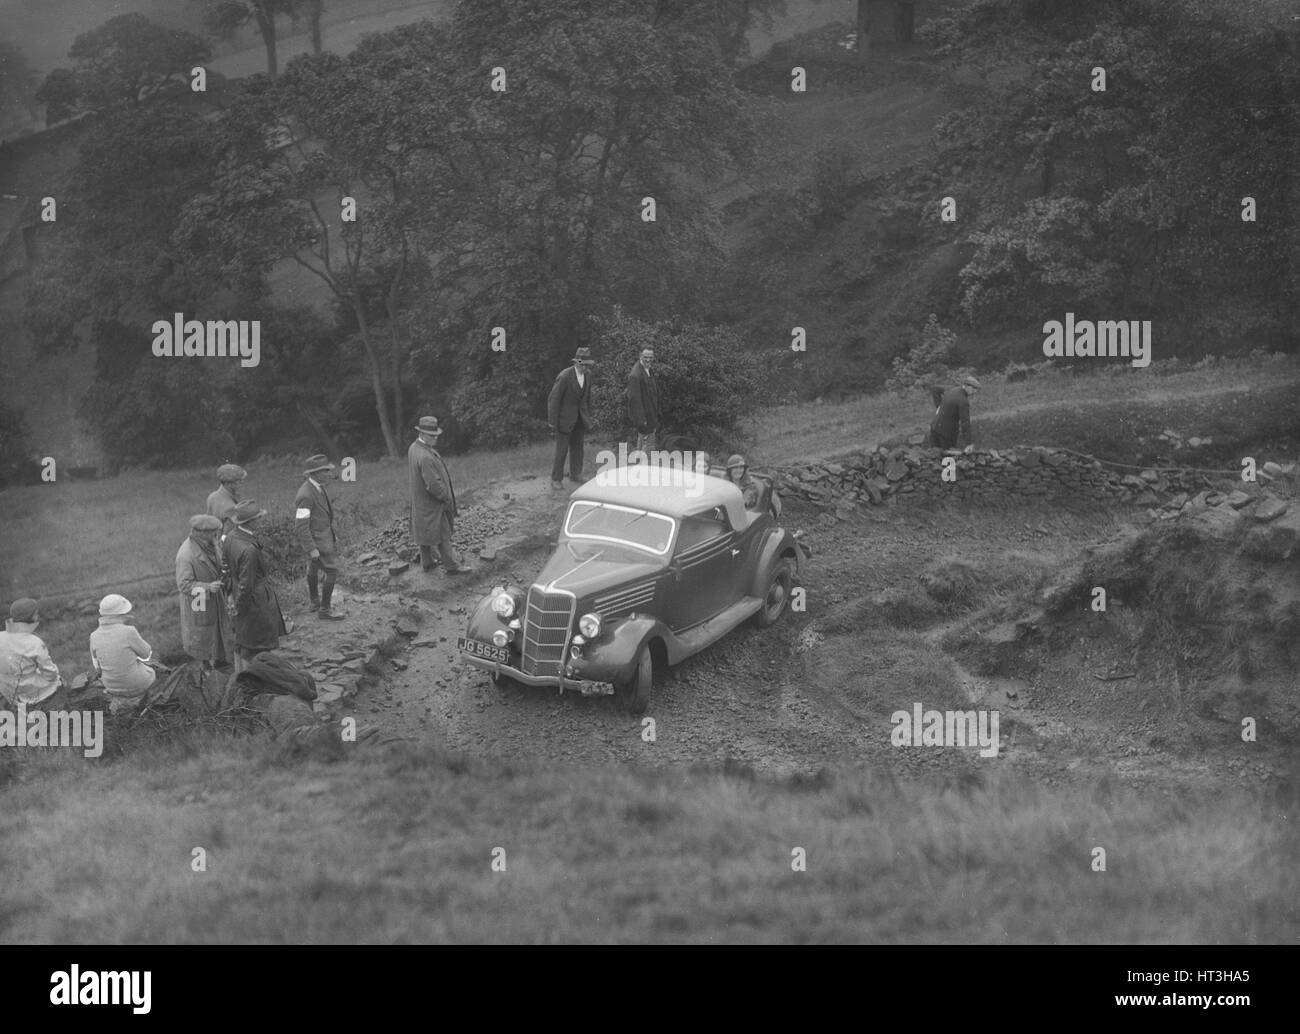 Ford V8 2-seater and dickey of JB Thompson competing in the MCC Sporting Trial, 1935. Artist: Bill Brunell. - Stock Image